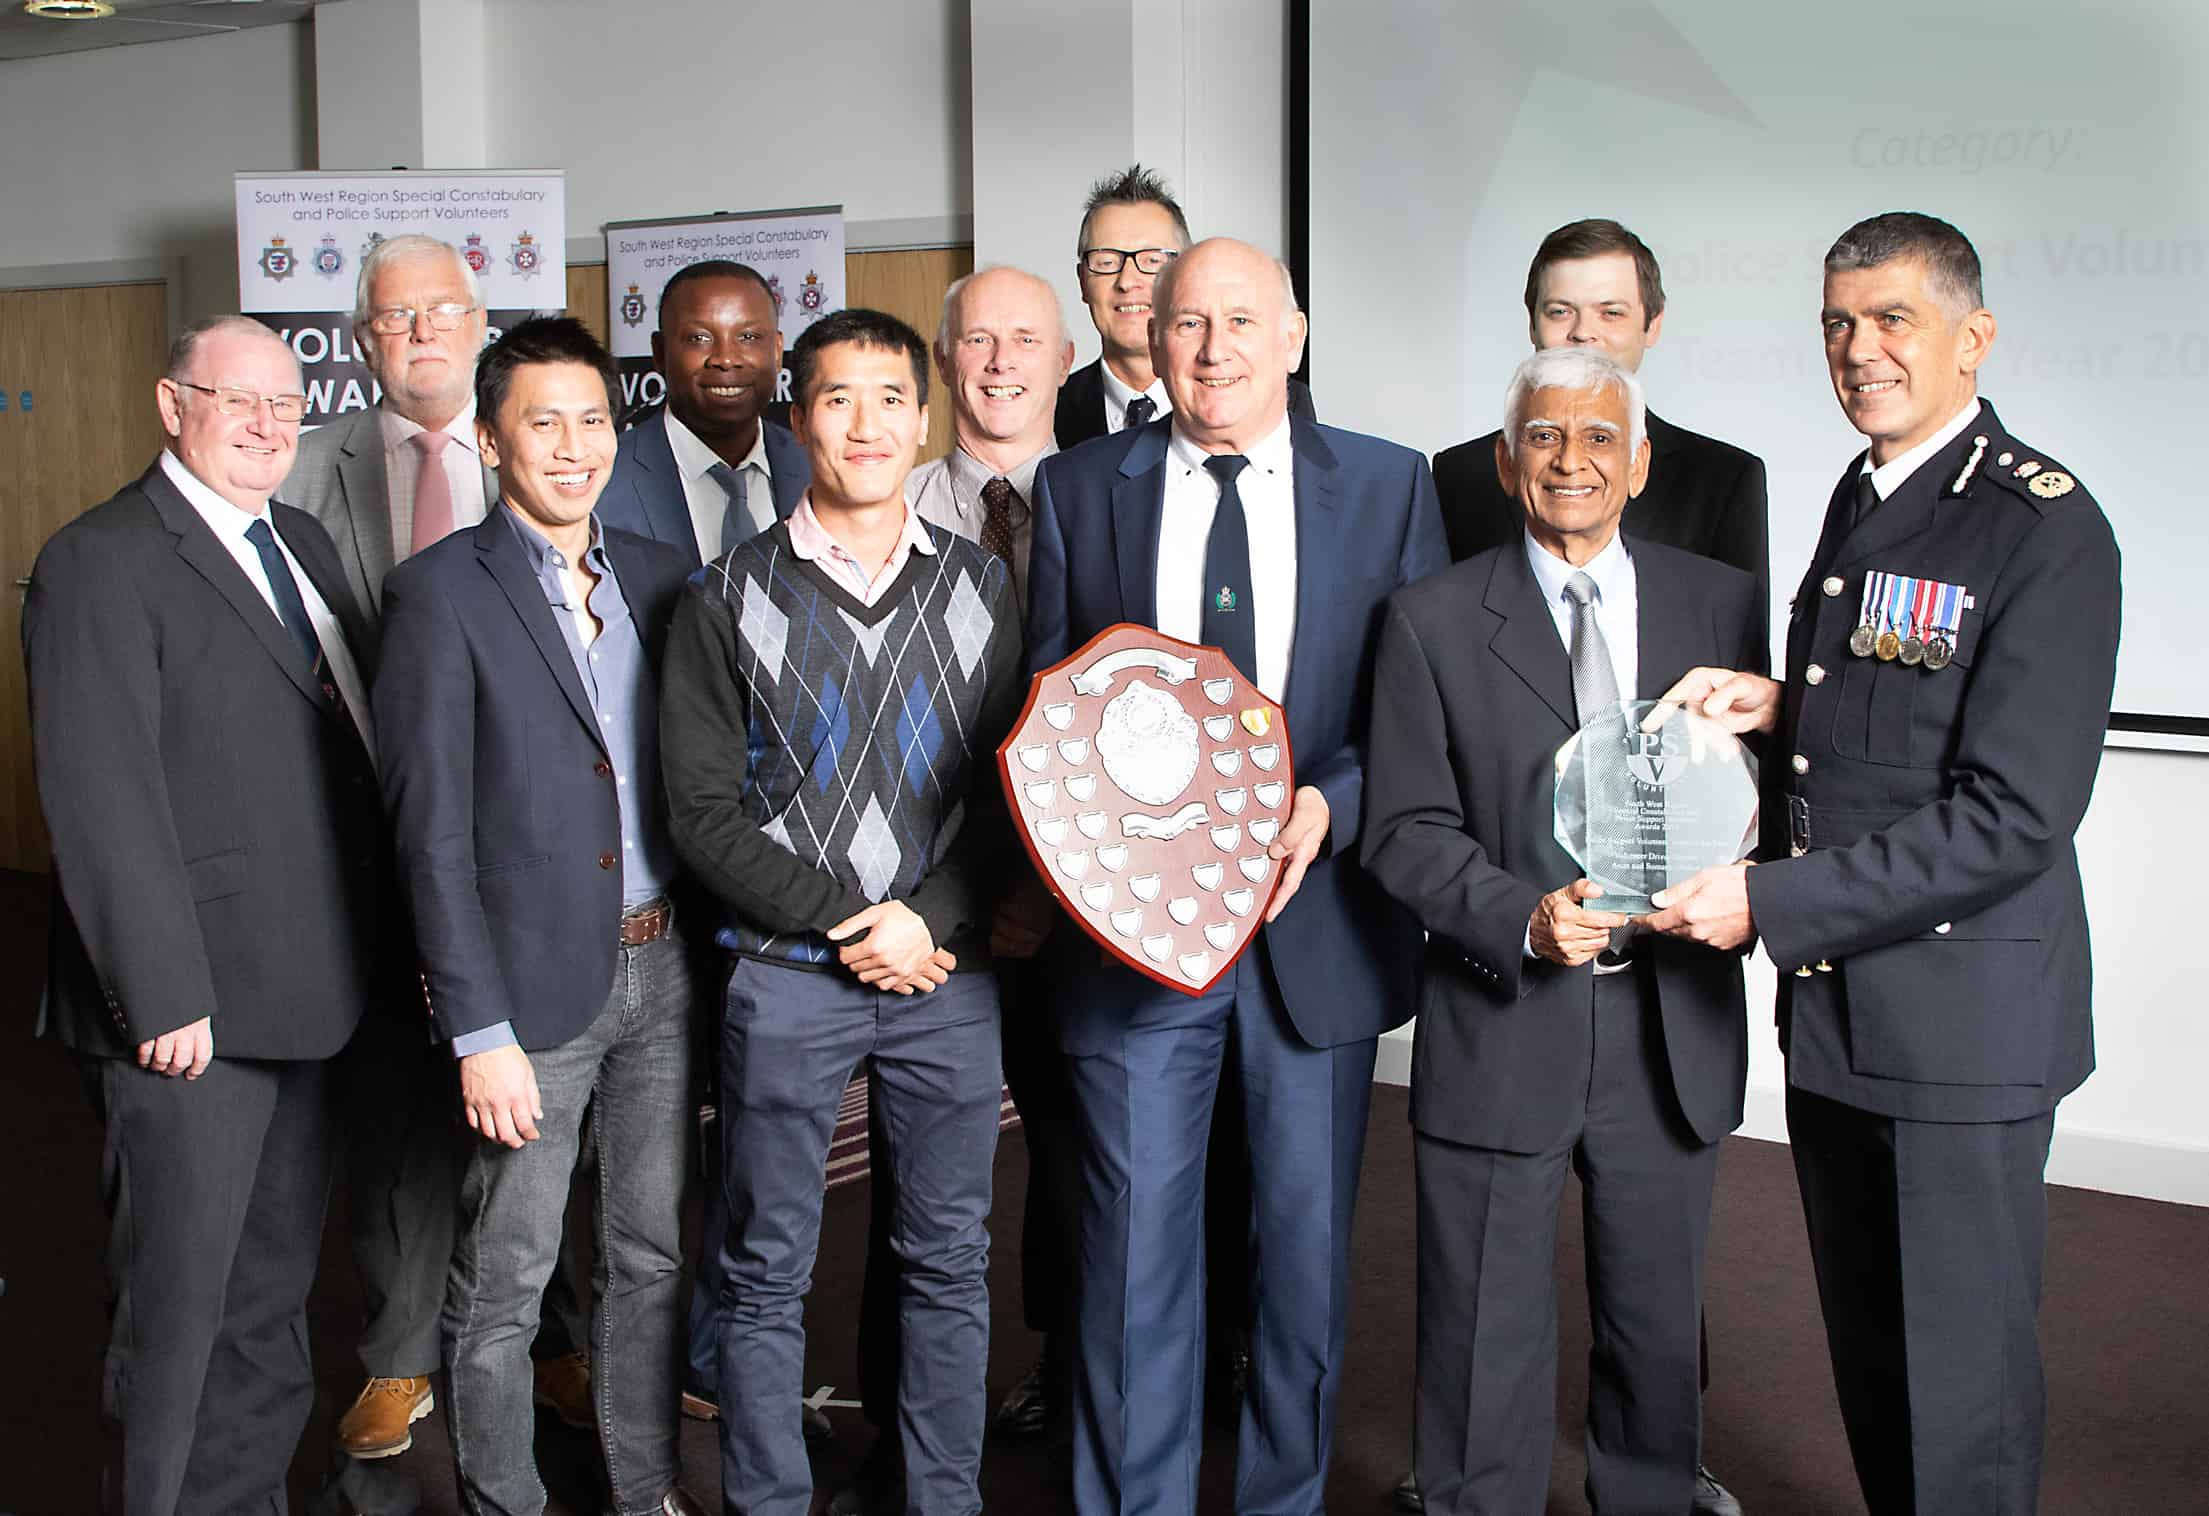 Police volunteers celebrated at South West Region Special Constabulary and Police Support Volunteer Awards 2019